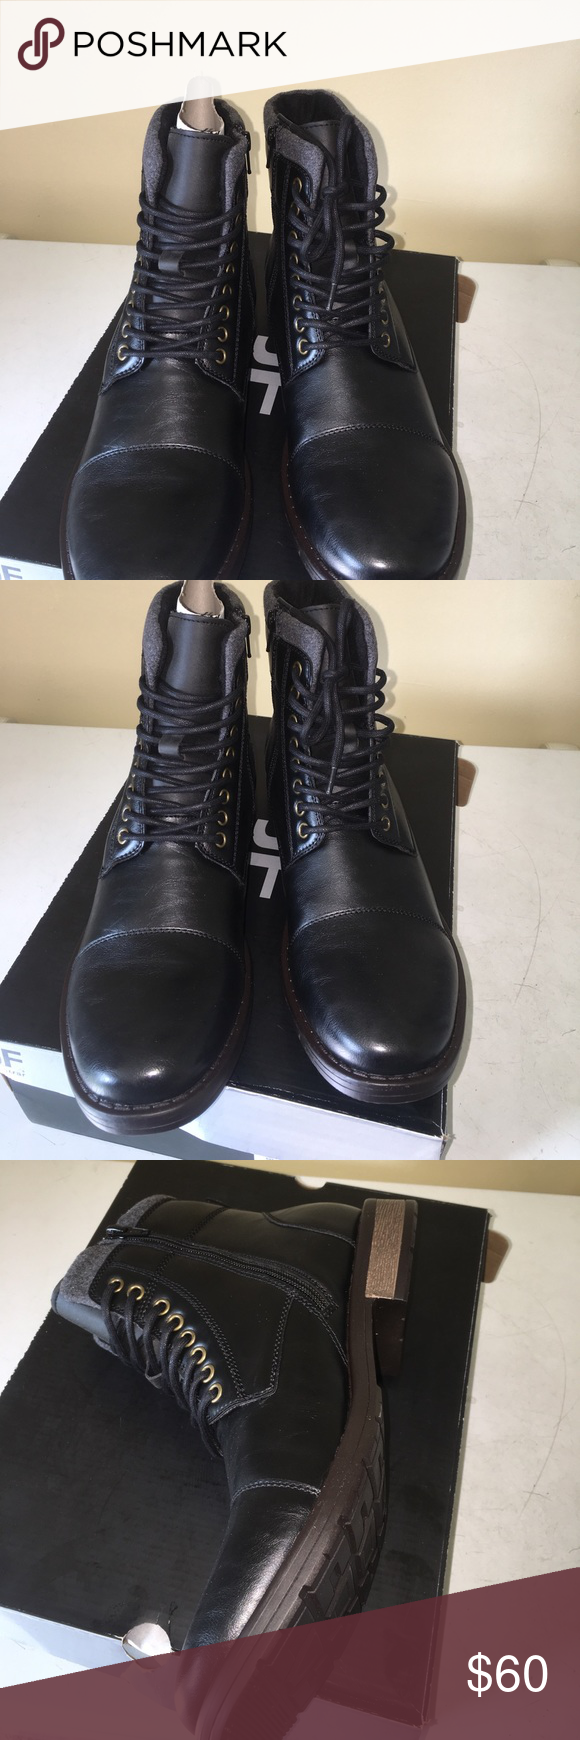 87be3626a8bb JF J.Ferrar men s black Quiqui lace up boot 11USA Made for rugged yet  stylish wear